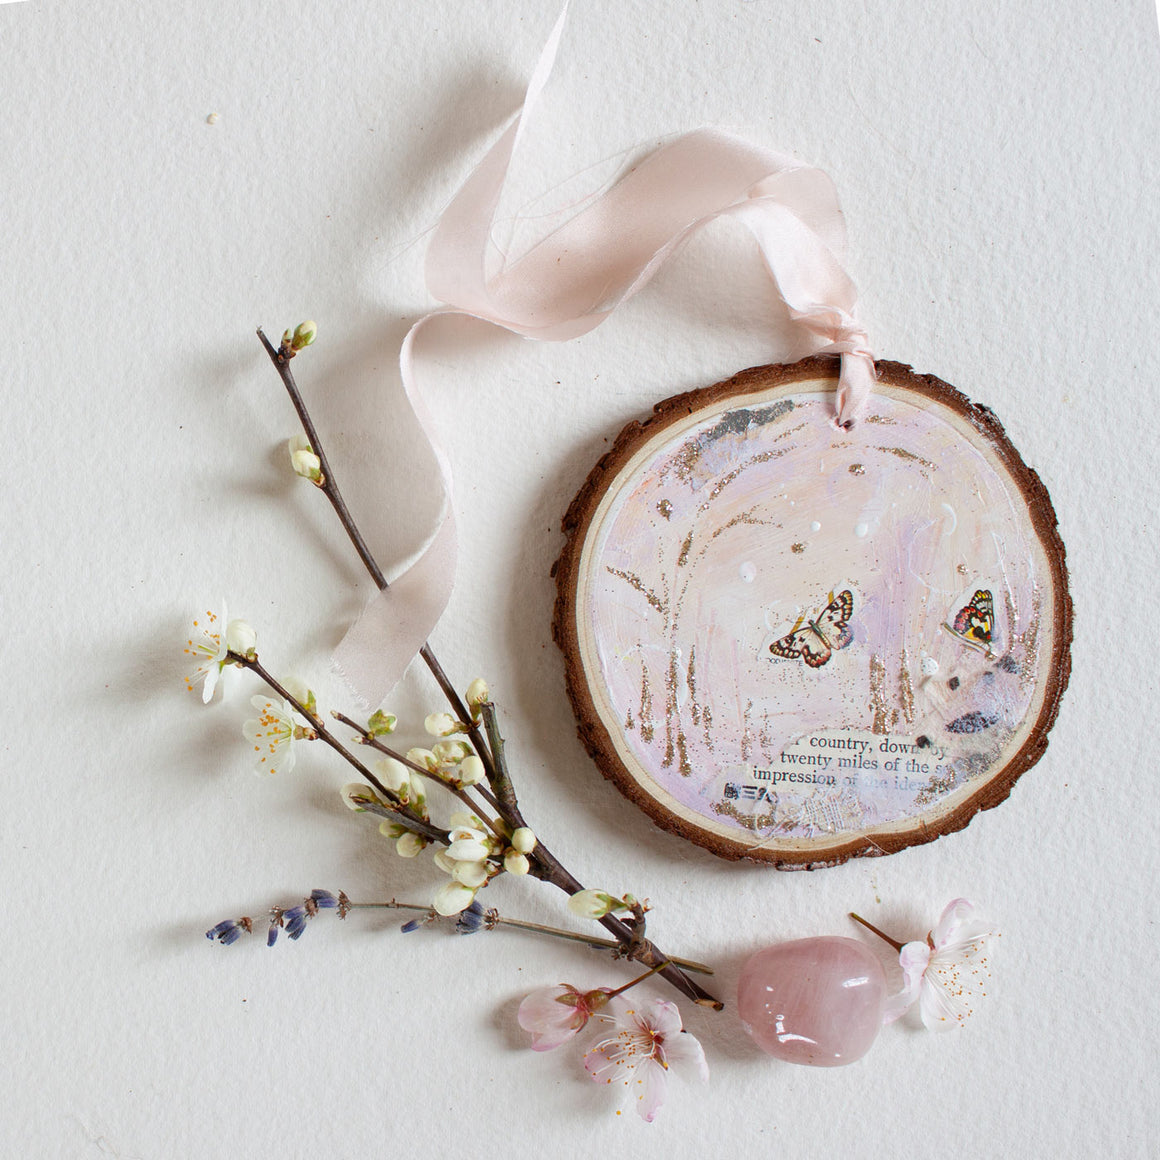 Drifting Impression Dreamscape Hanging Mini Painting on Rustic Wooden Slice